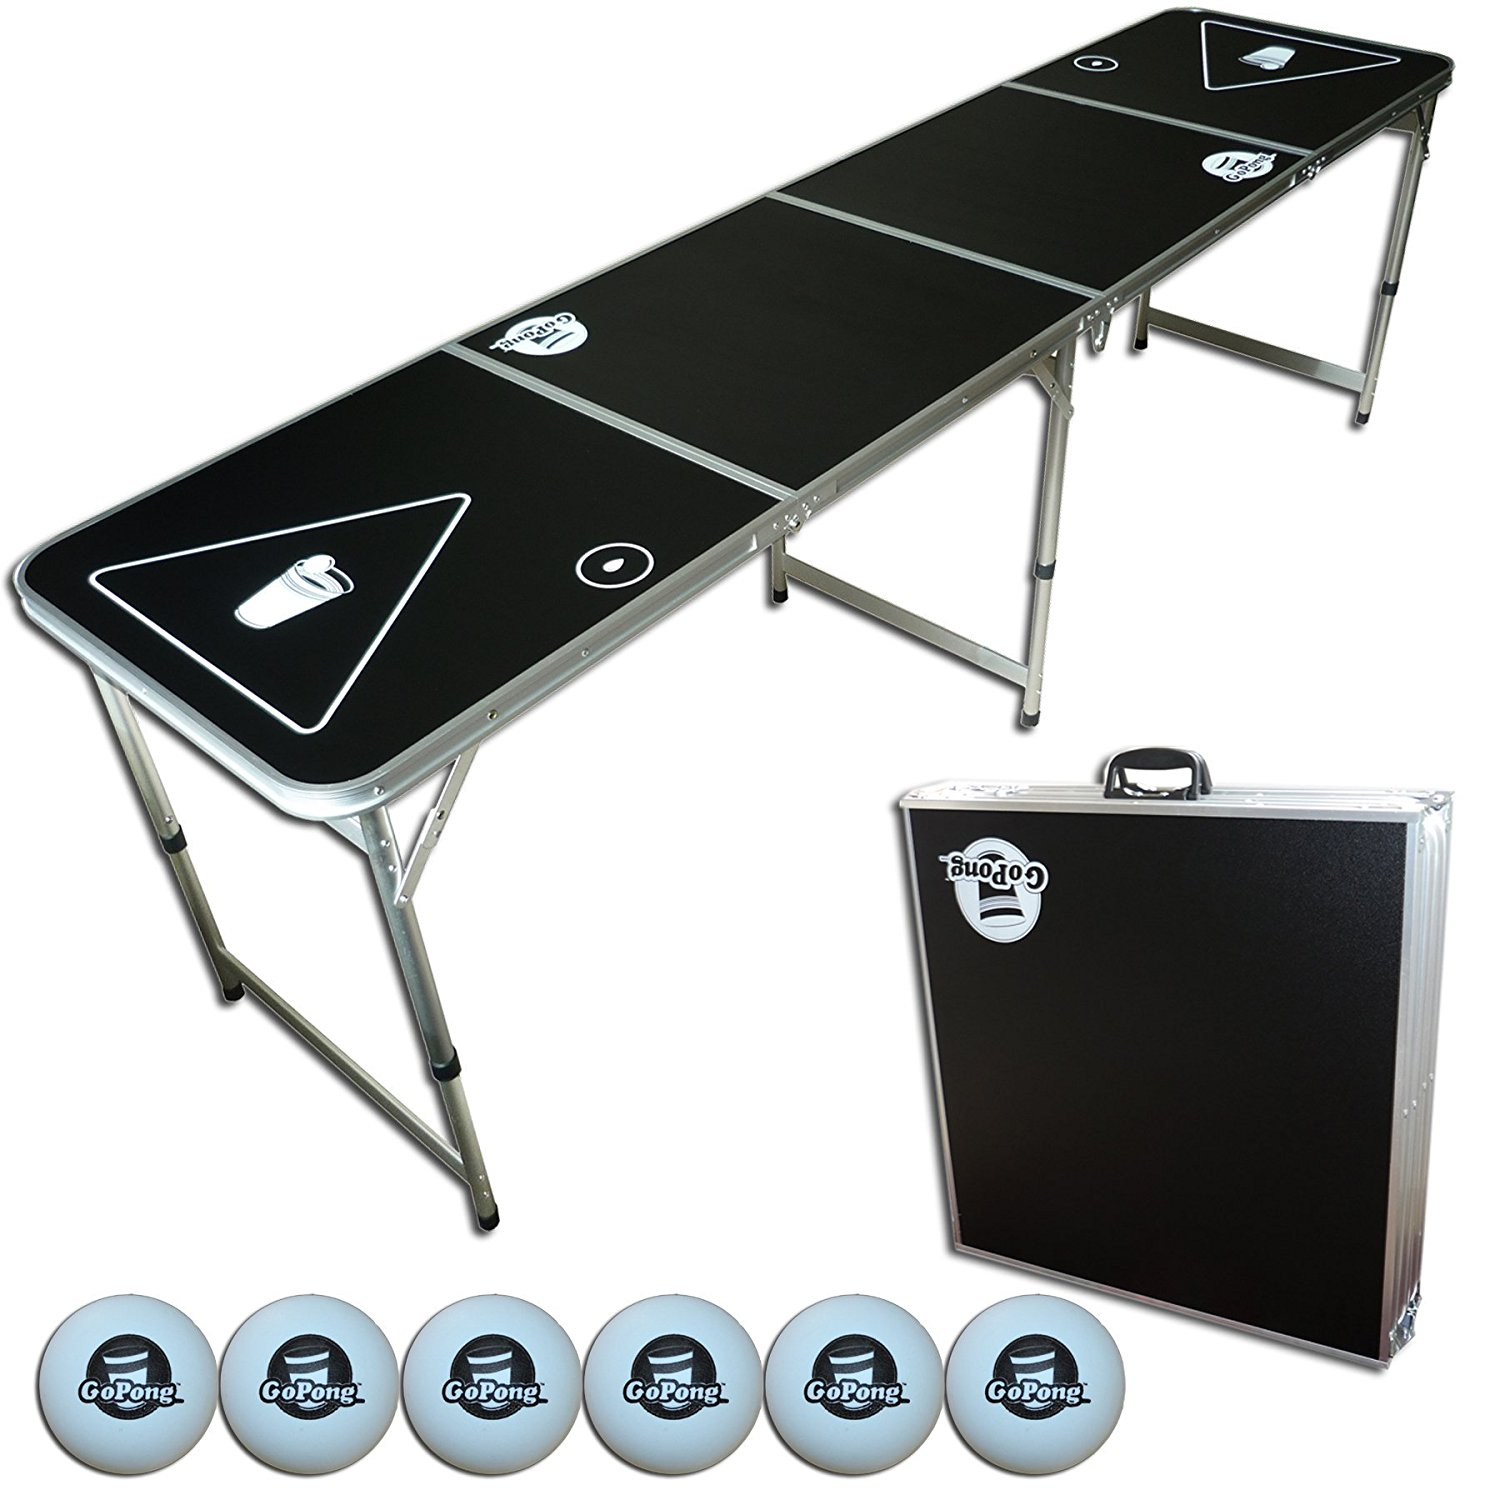 The Original Black Beer Pong Table, 2x8, 8ft Tailgate Table, Aluminum, All Weather, Lightweight, Portable